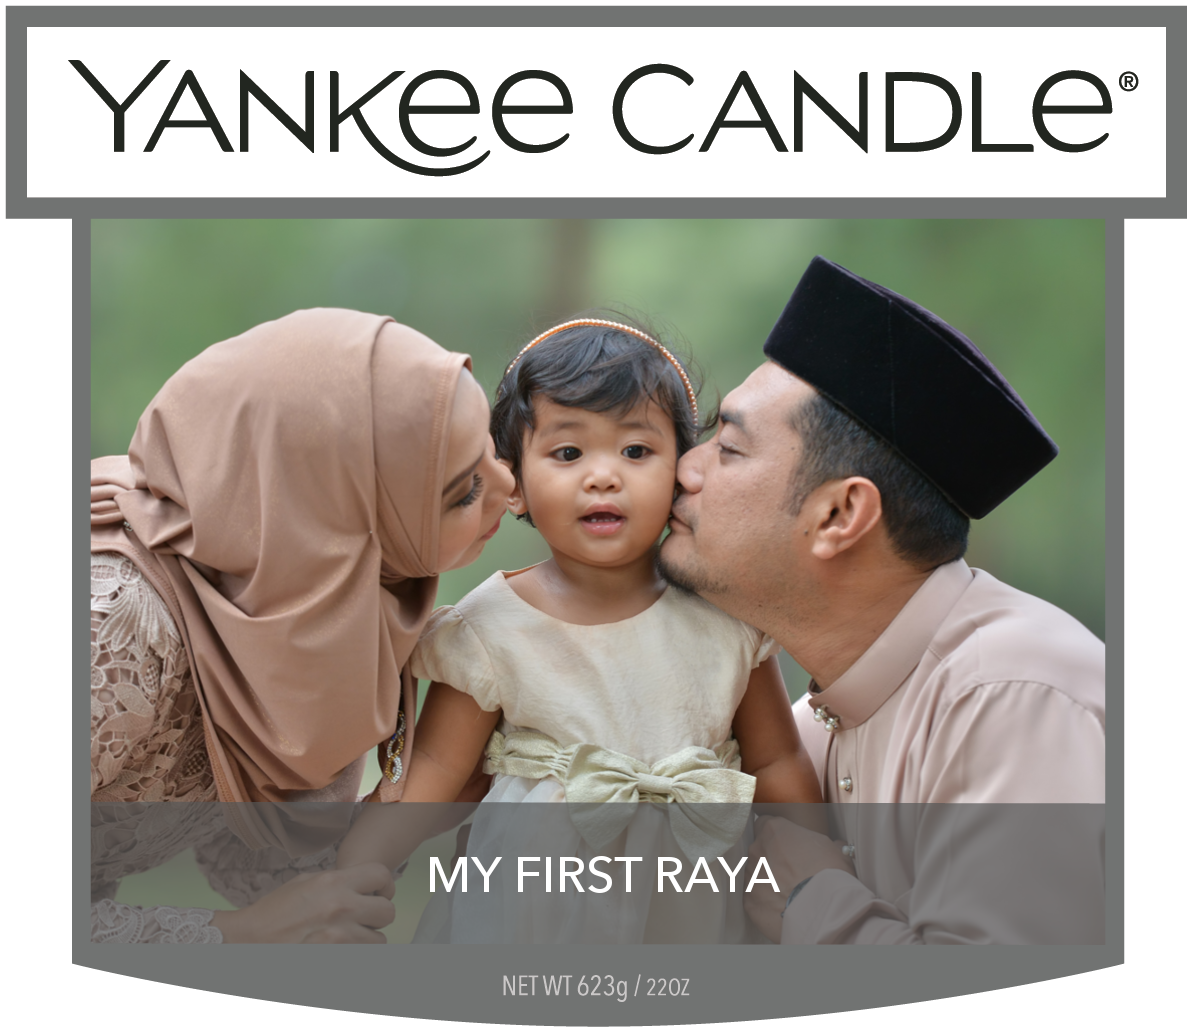 'Raya' Moment Photo Contest